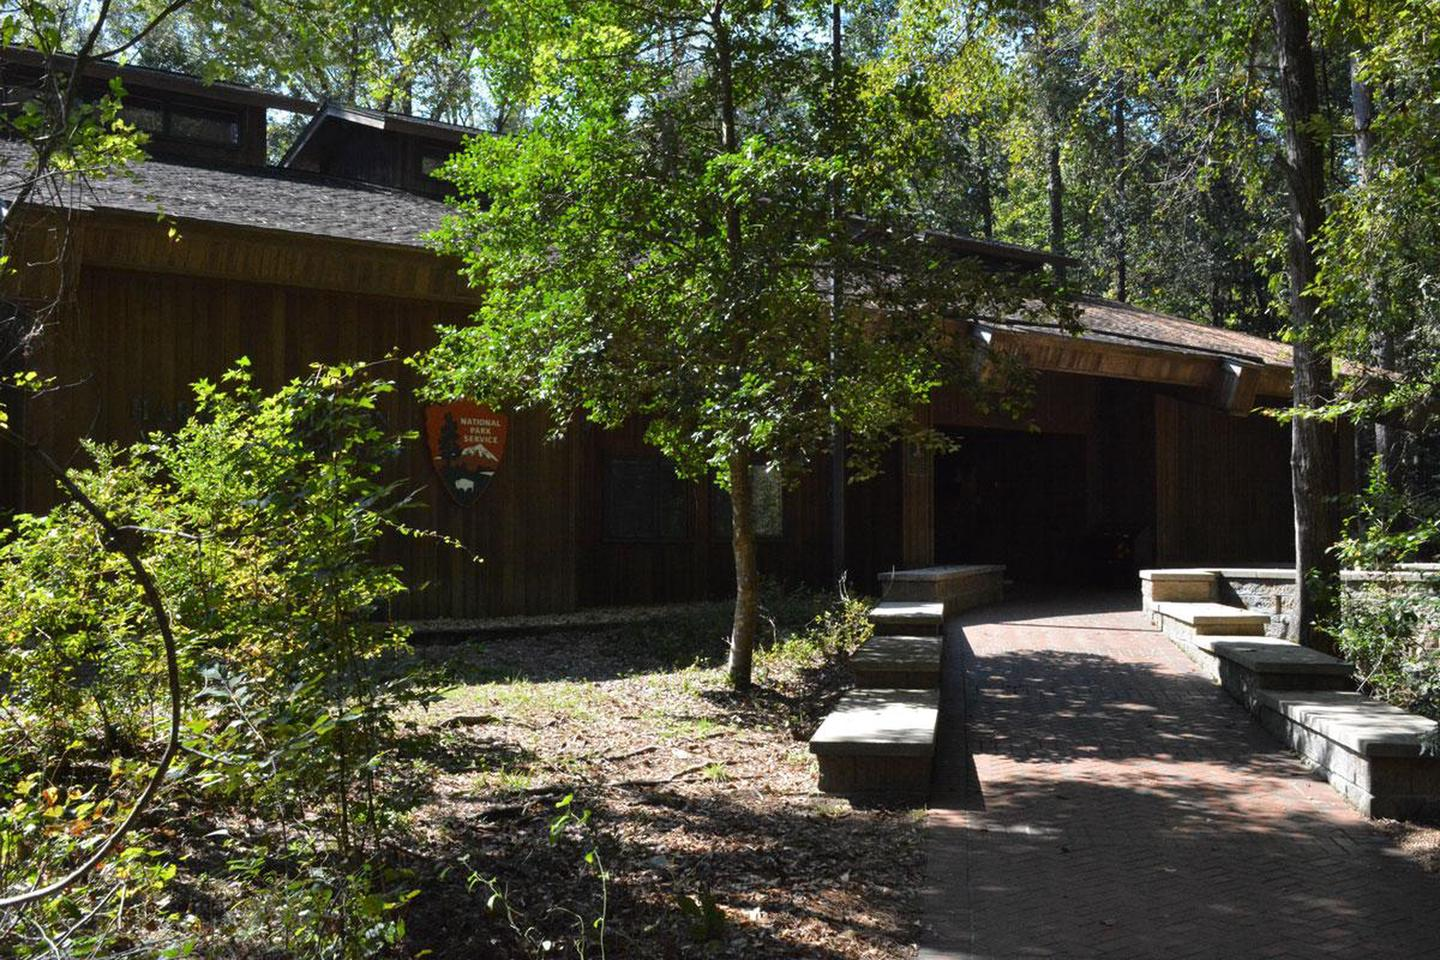 Harry Hampton Visitor CenterThe Harry Hampton Visitor Center is where visitors can start their journey of exploration at Congaree National Park